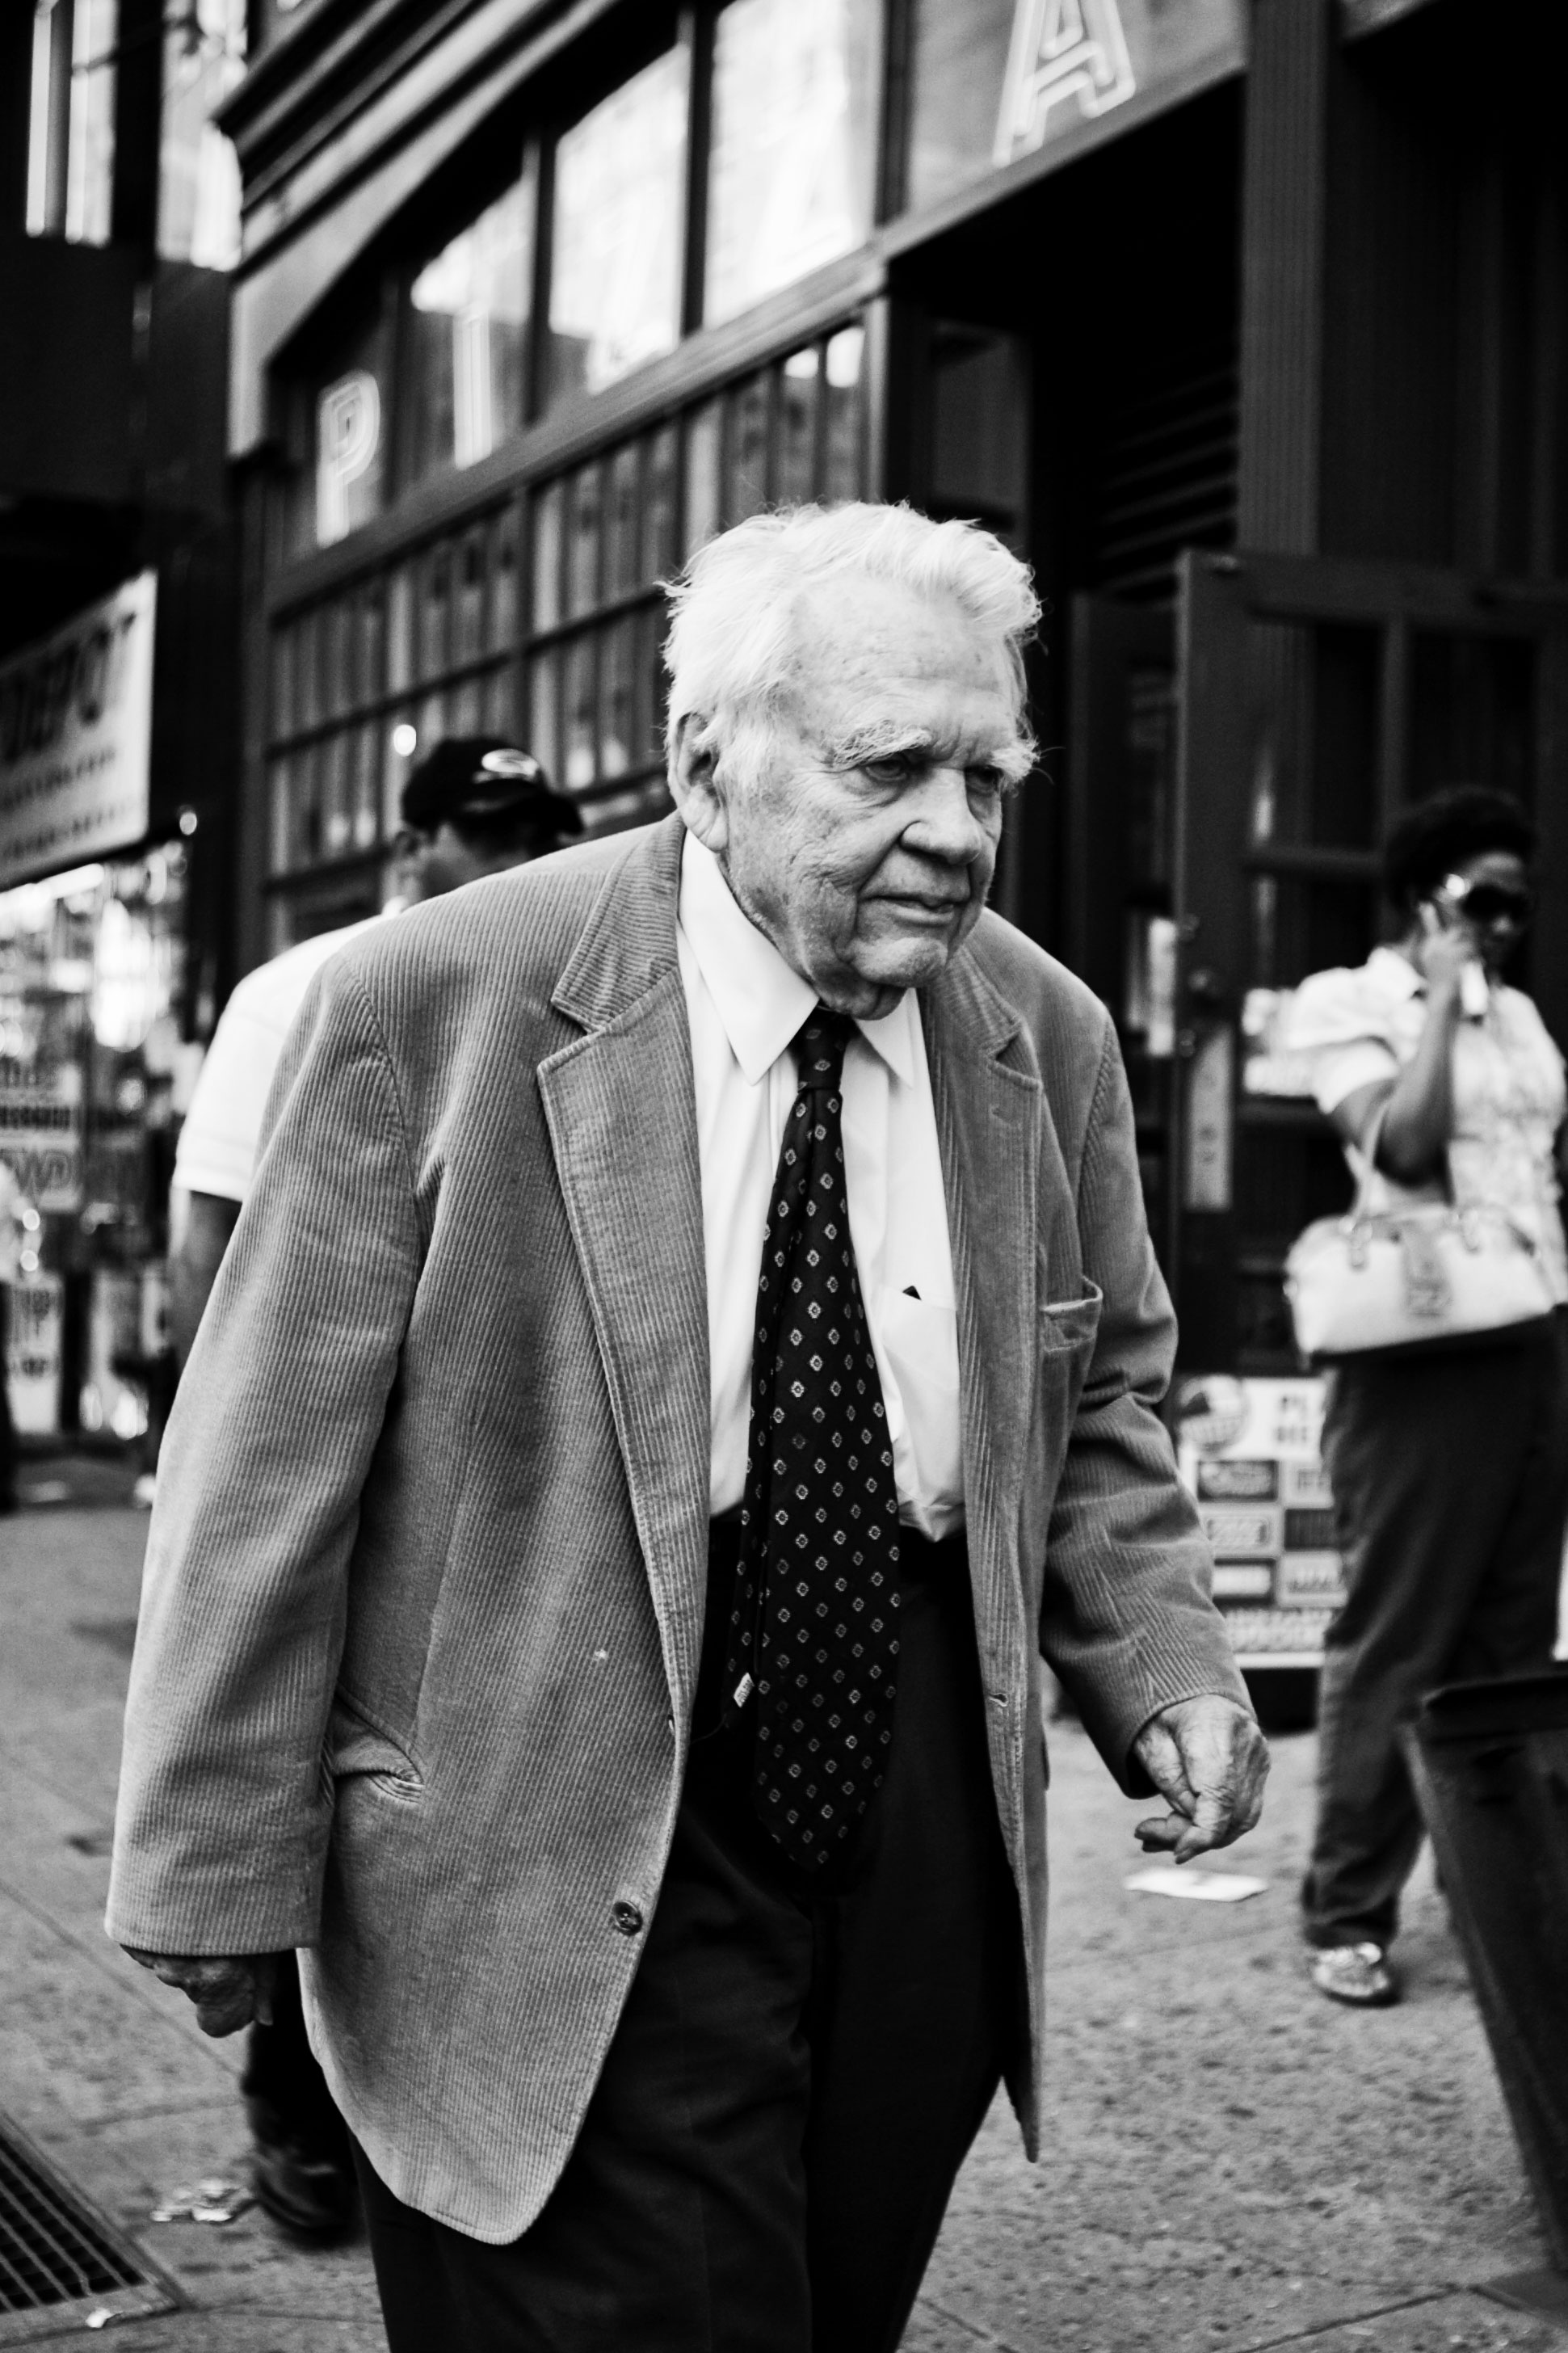 Andy Rooney, the CBS News Correspondent, died following complications from minor surgery. (Flickr: Stephenson Brown)